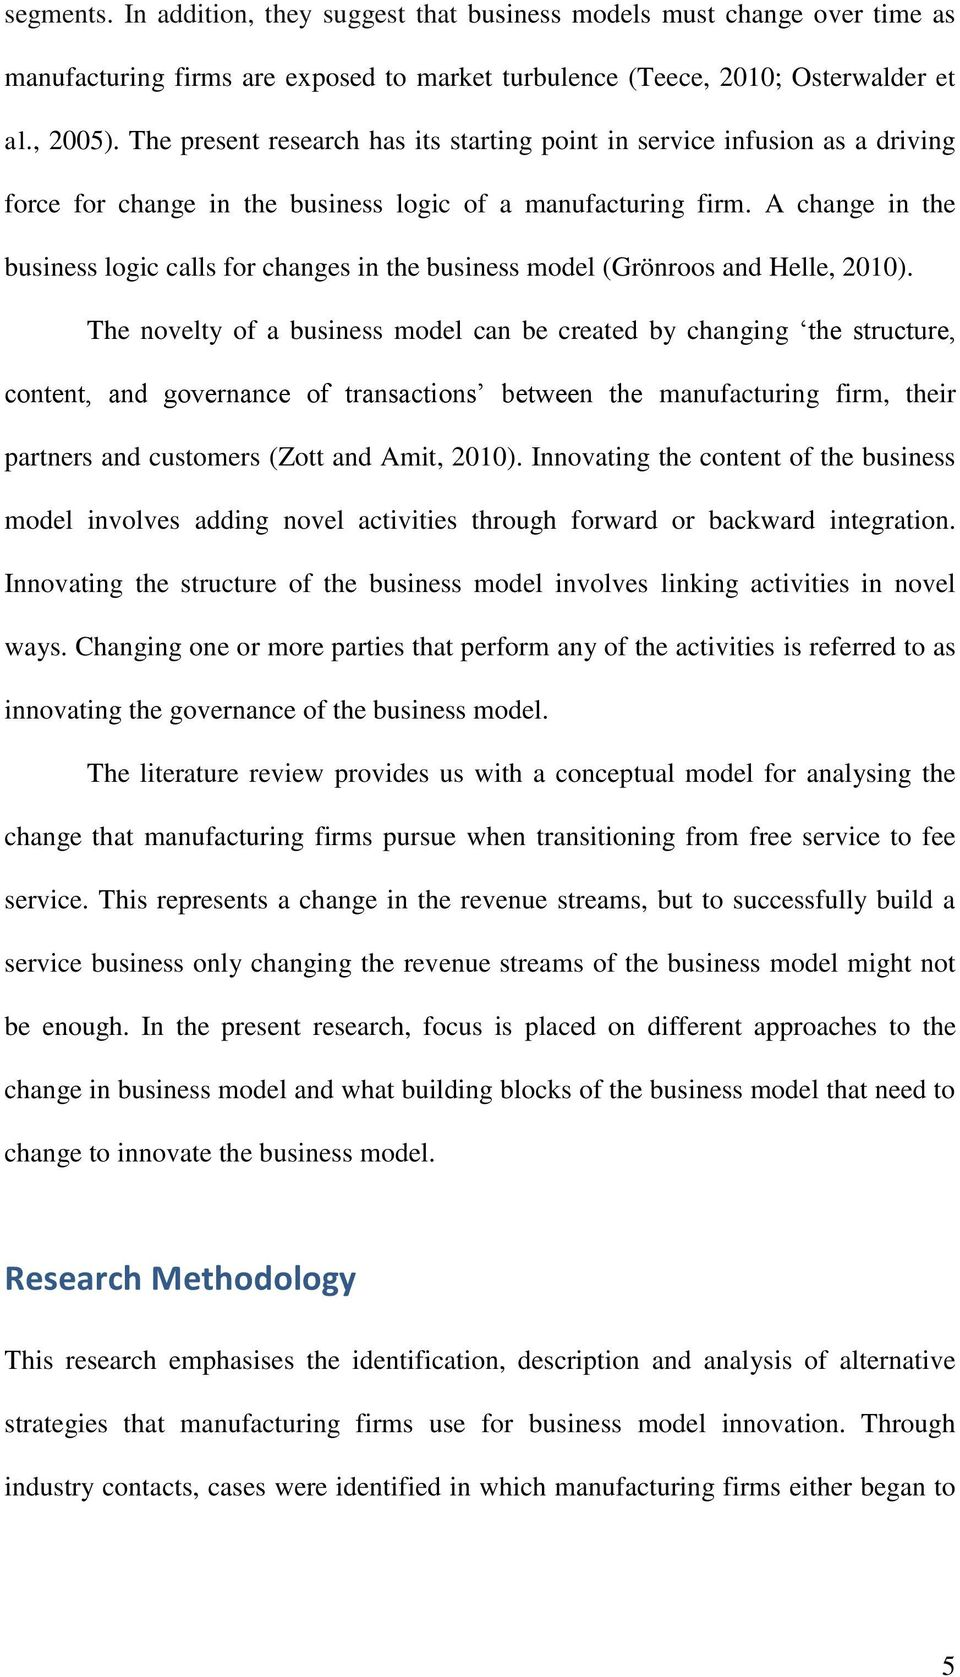 A change in the business logic calls for changes in the business model (Grönroos and Helle, 2010).